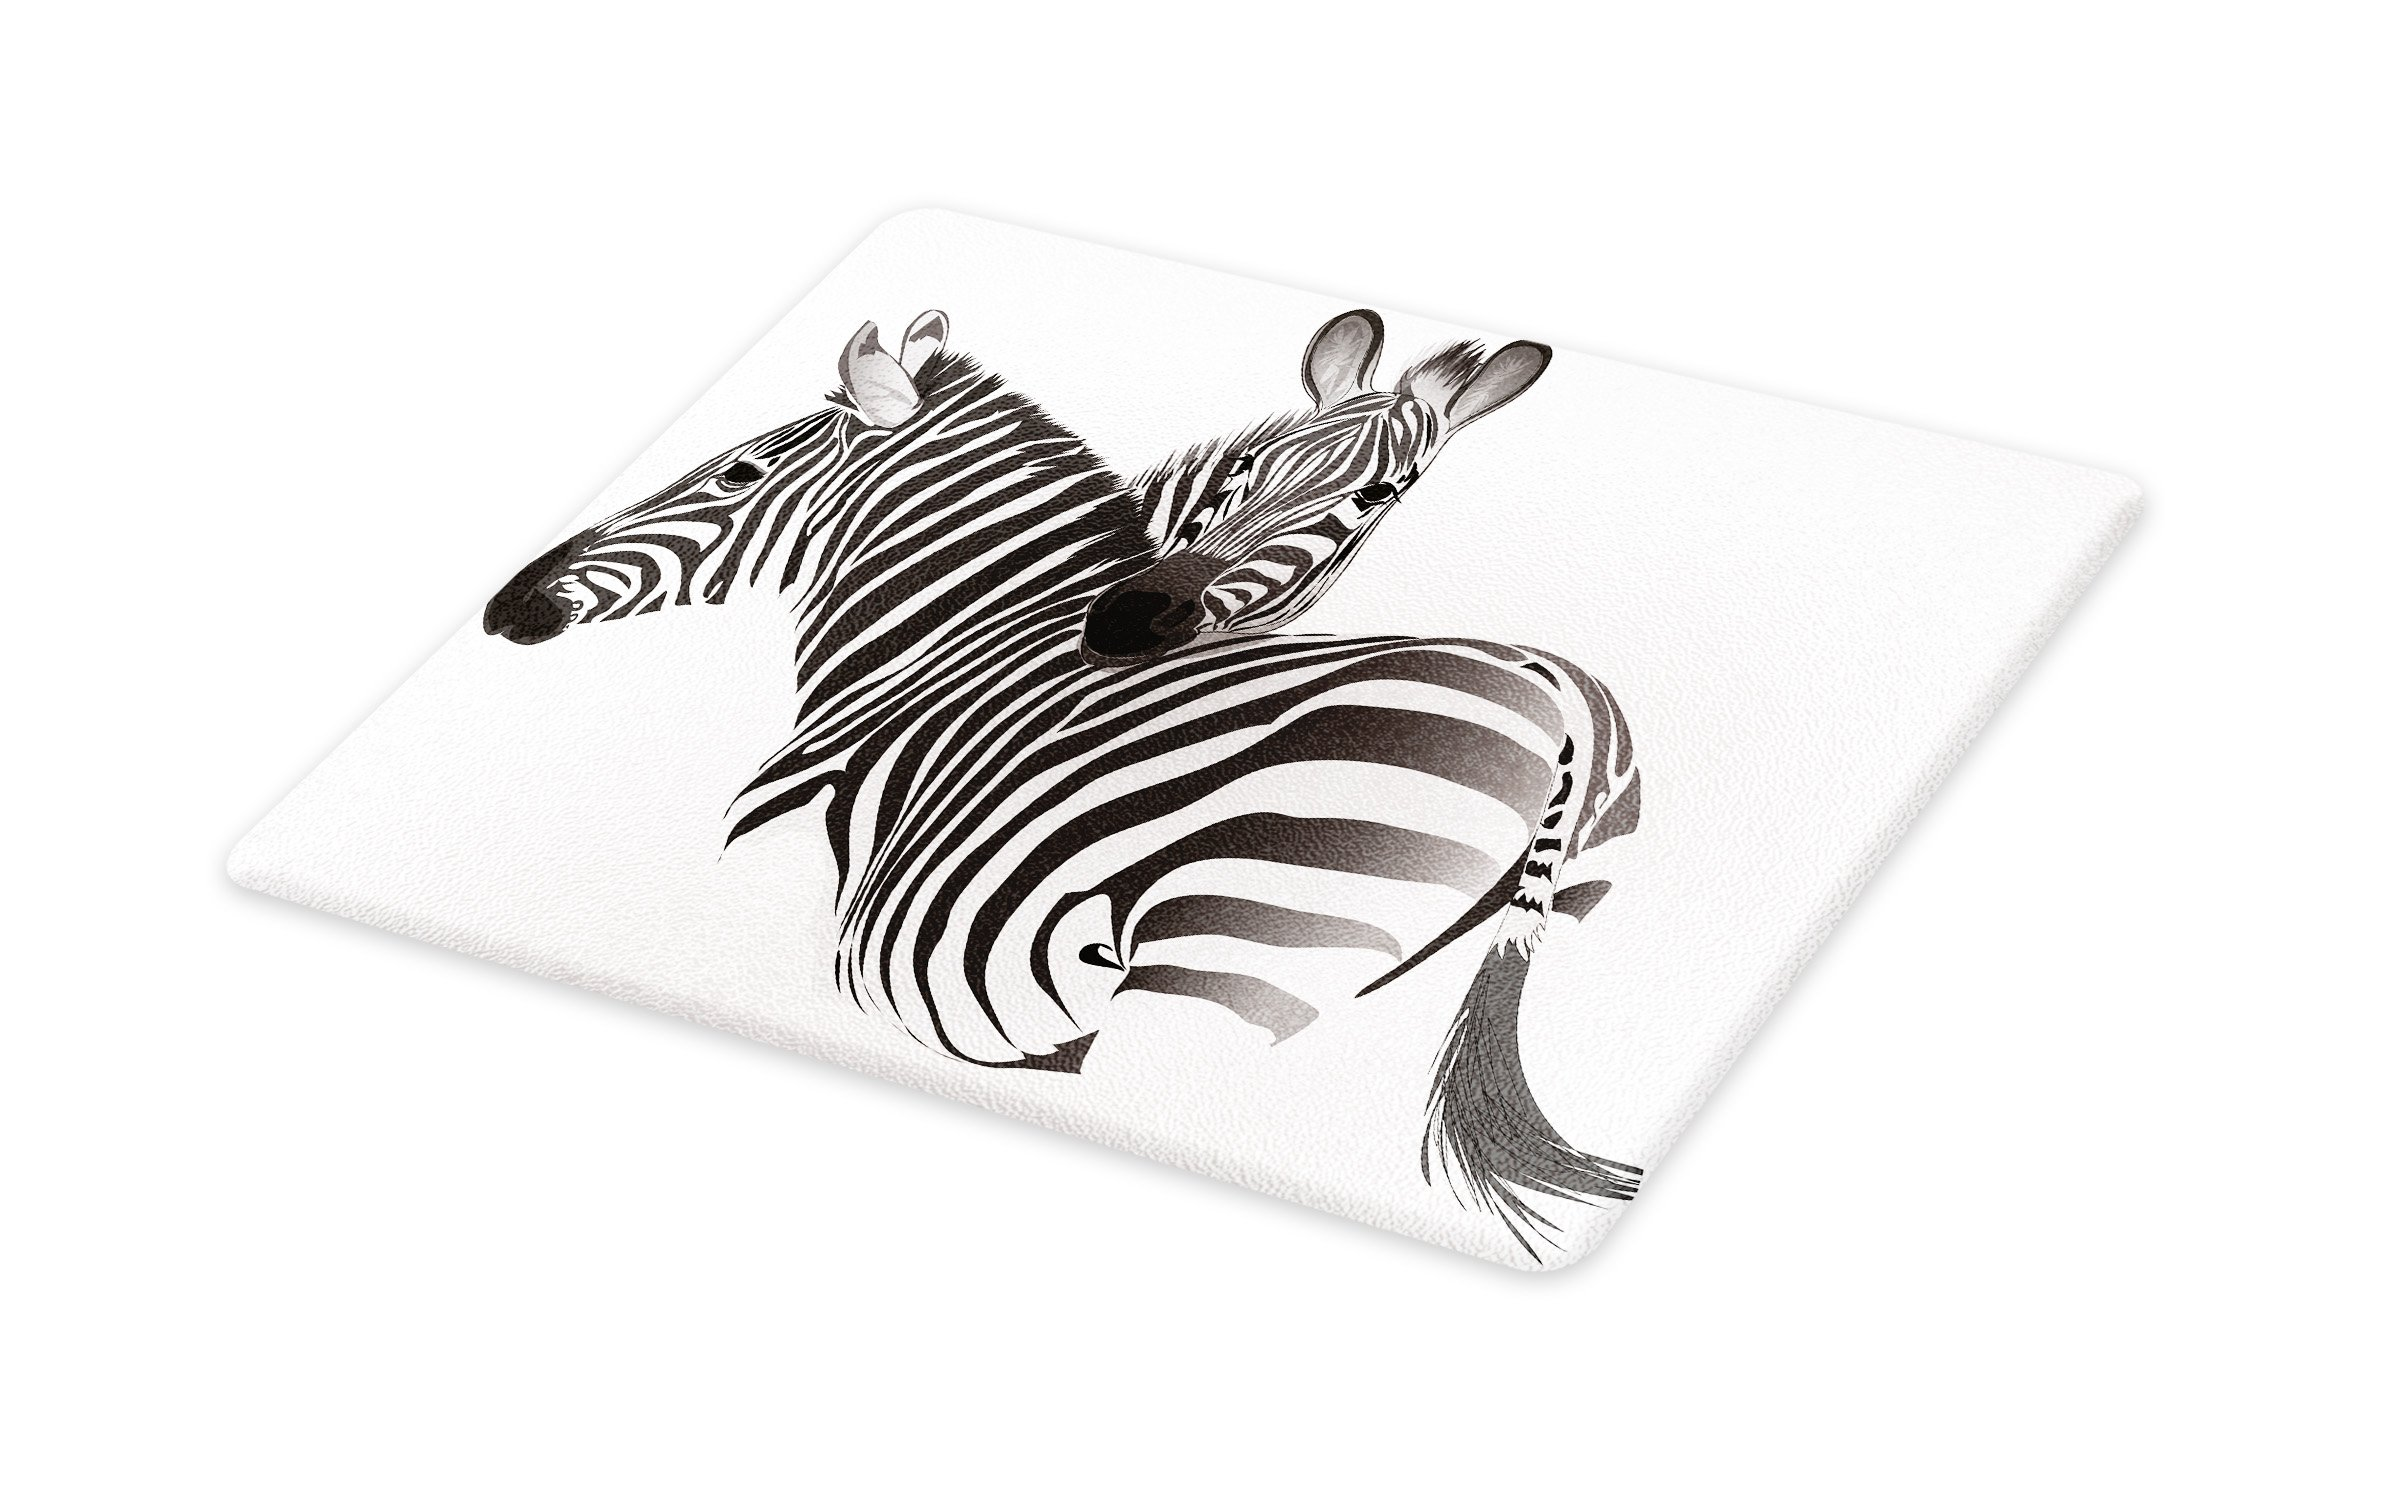 Lunarable Zebra Cutting Board, Exotic African Animals Cute Couple Safari Theme Savannah Jungle Fauna Camouflage, Decorative Tempered Glass Cutting and Serving Board, Large Size, Grey White